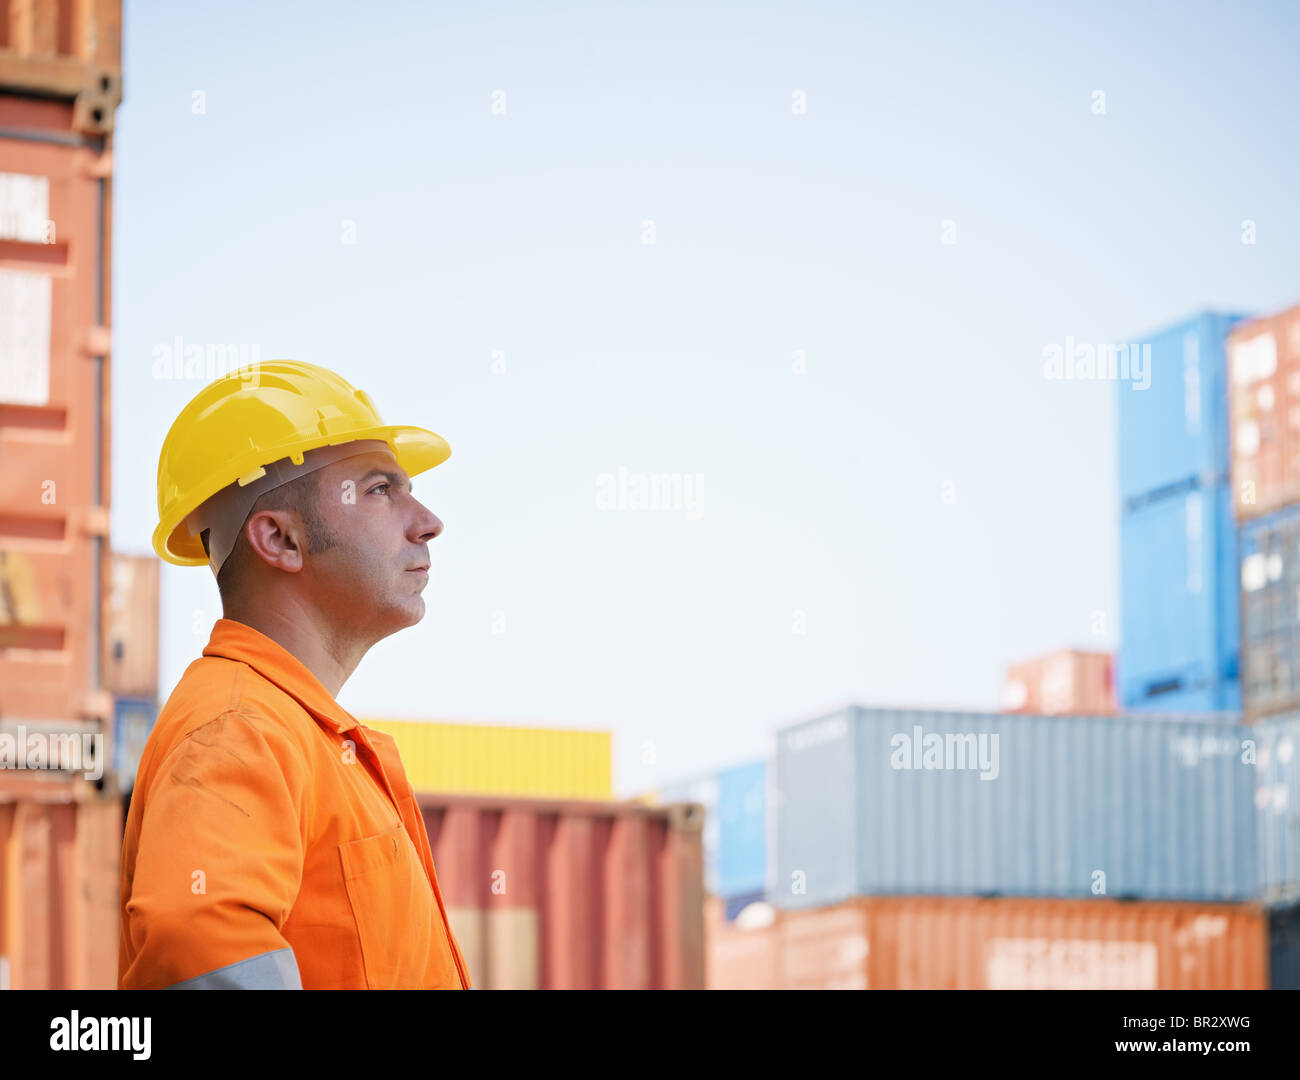 portrait of mid adult worker looking at cargo containers. Horizontal shape, side view, copy space - Stock Image